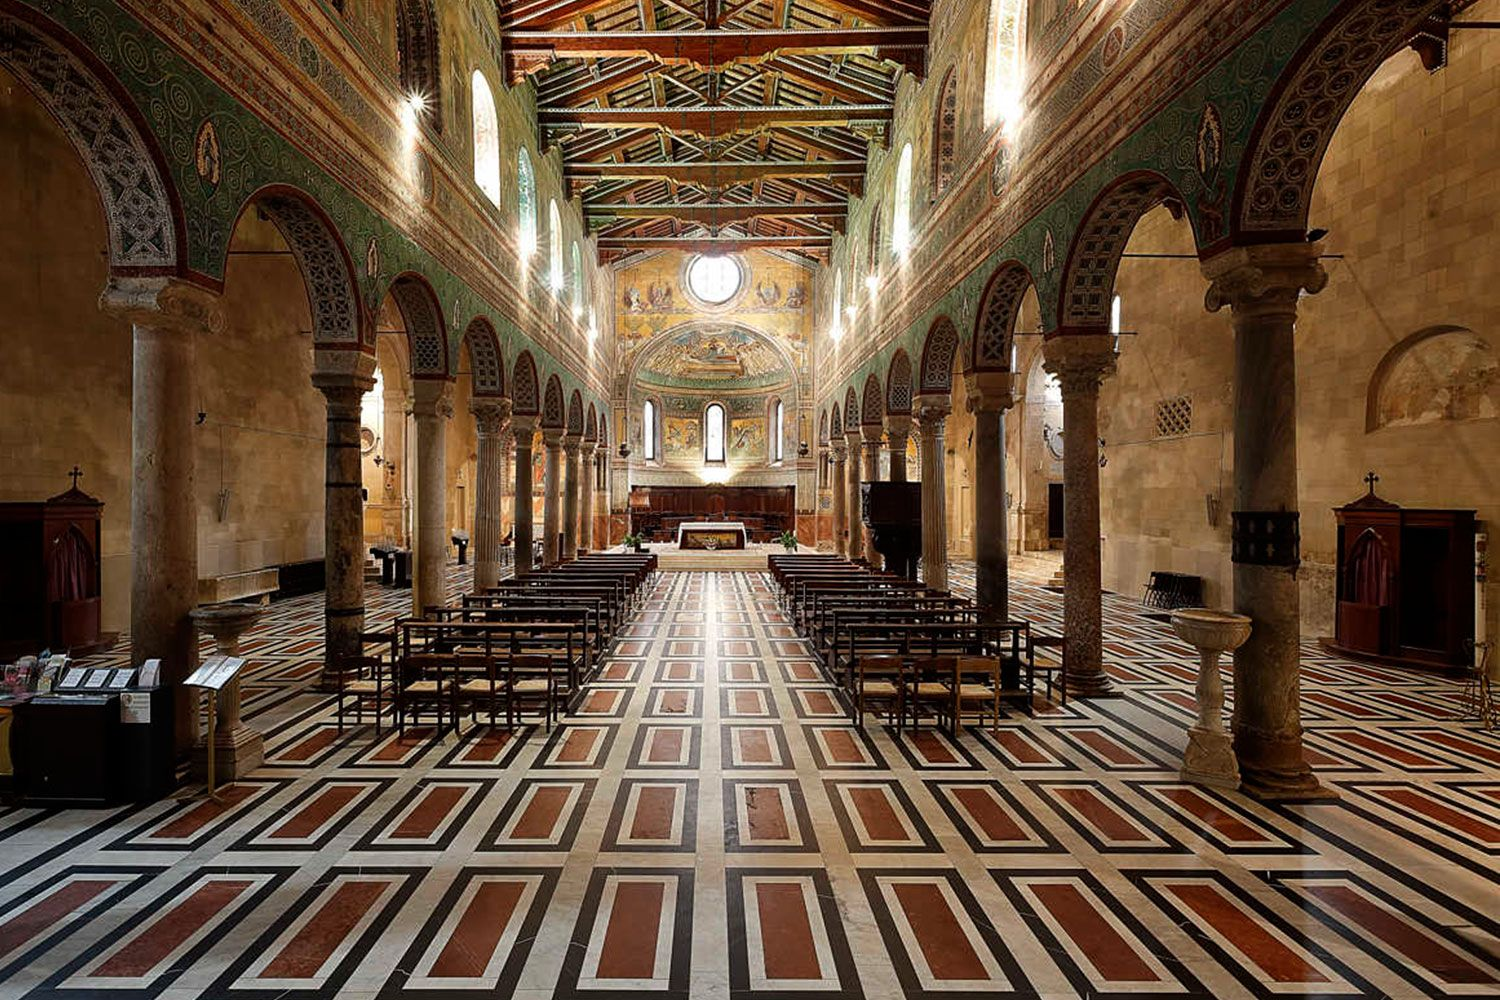 Inside the Duomo of Chiusi that dates back to the 6th century AD.